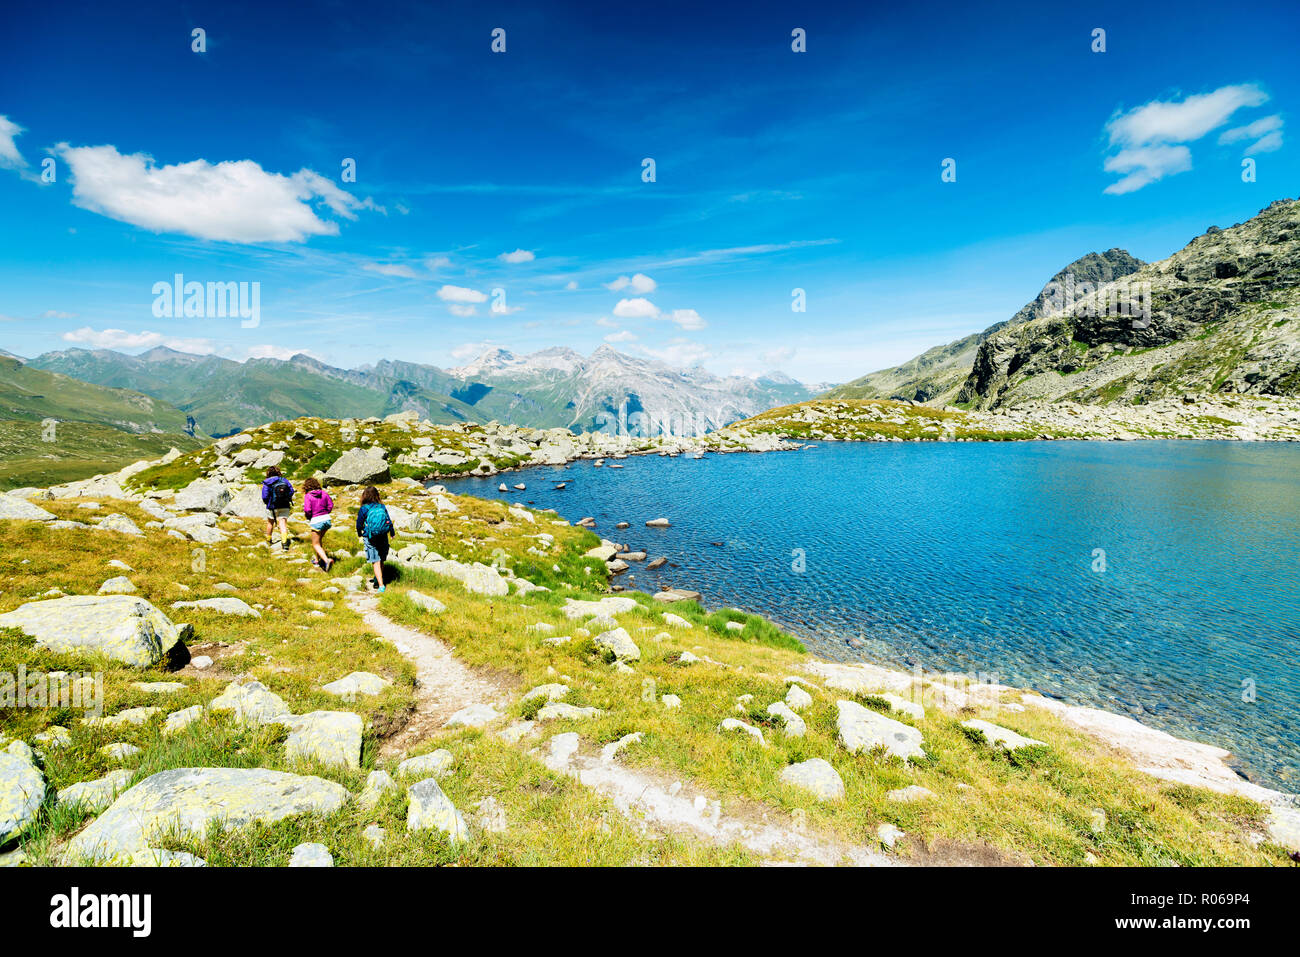 Hikers on footpath on the shore of lake Bergsee, Spluga Pass, canton of Graubunden, Switzerland, Europe - Stock Image